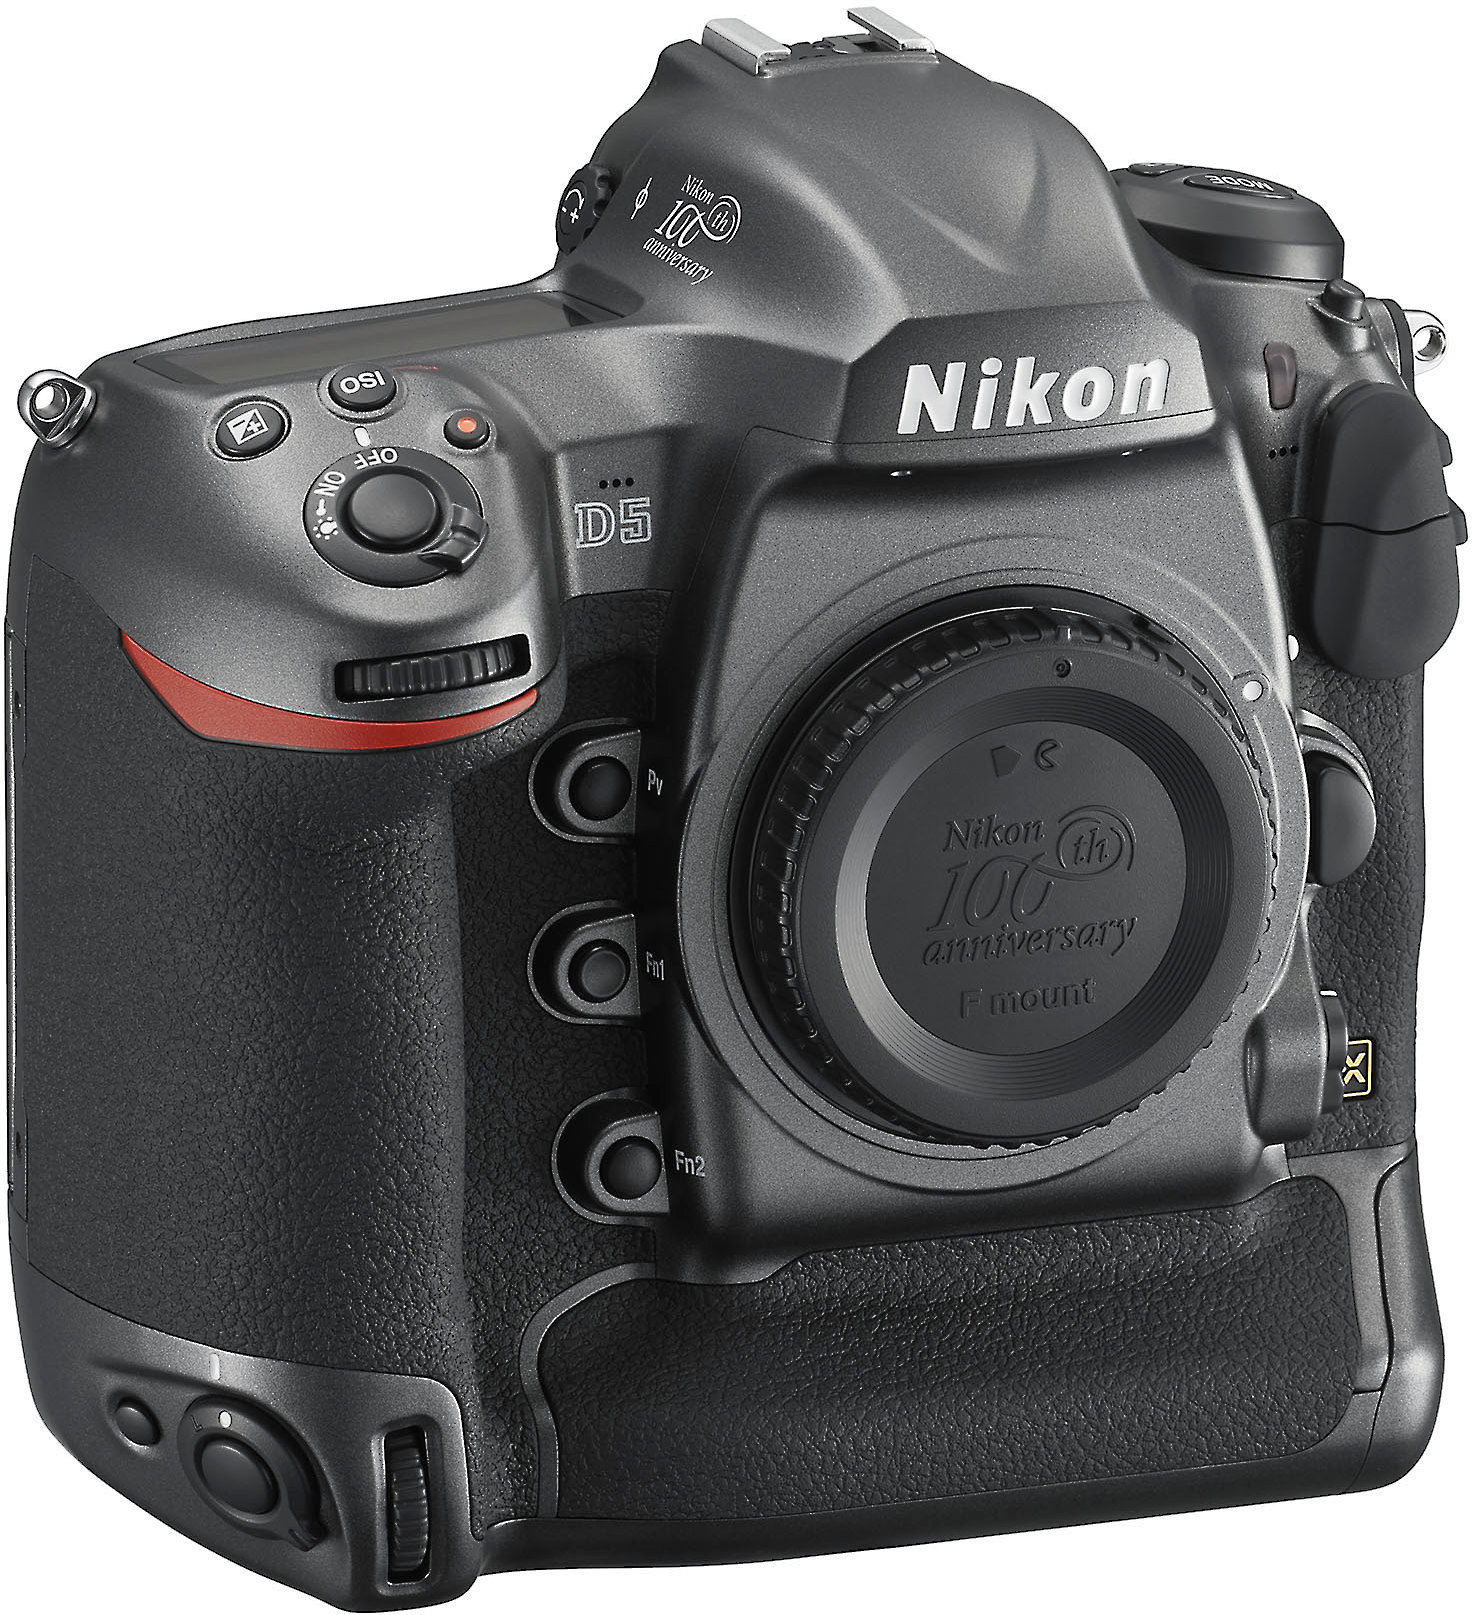 Nikon D5 100th Anniversary Edition (no lens included) 20 8-megapixel